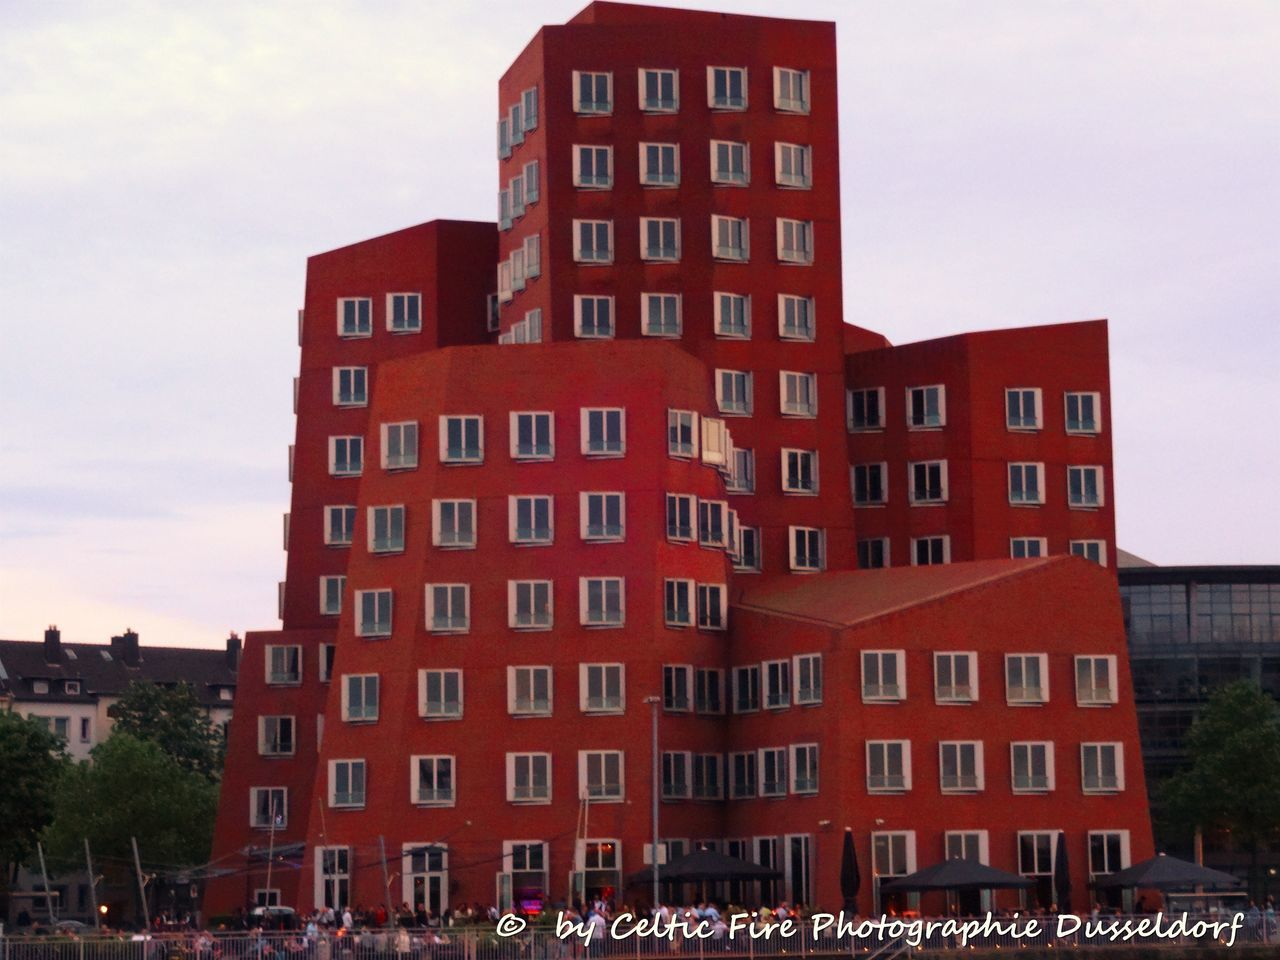 architecture, building exterior, built structure, city, red, outdoors, sky, large group of people, day, residential, people